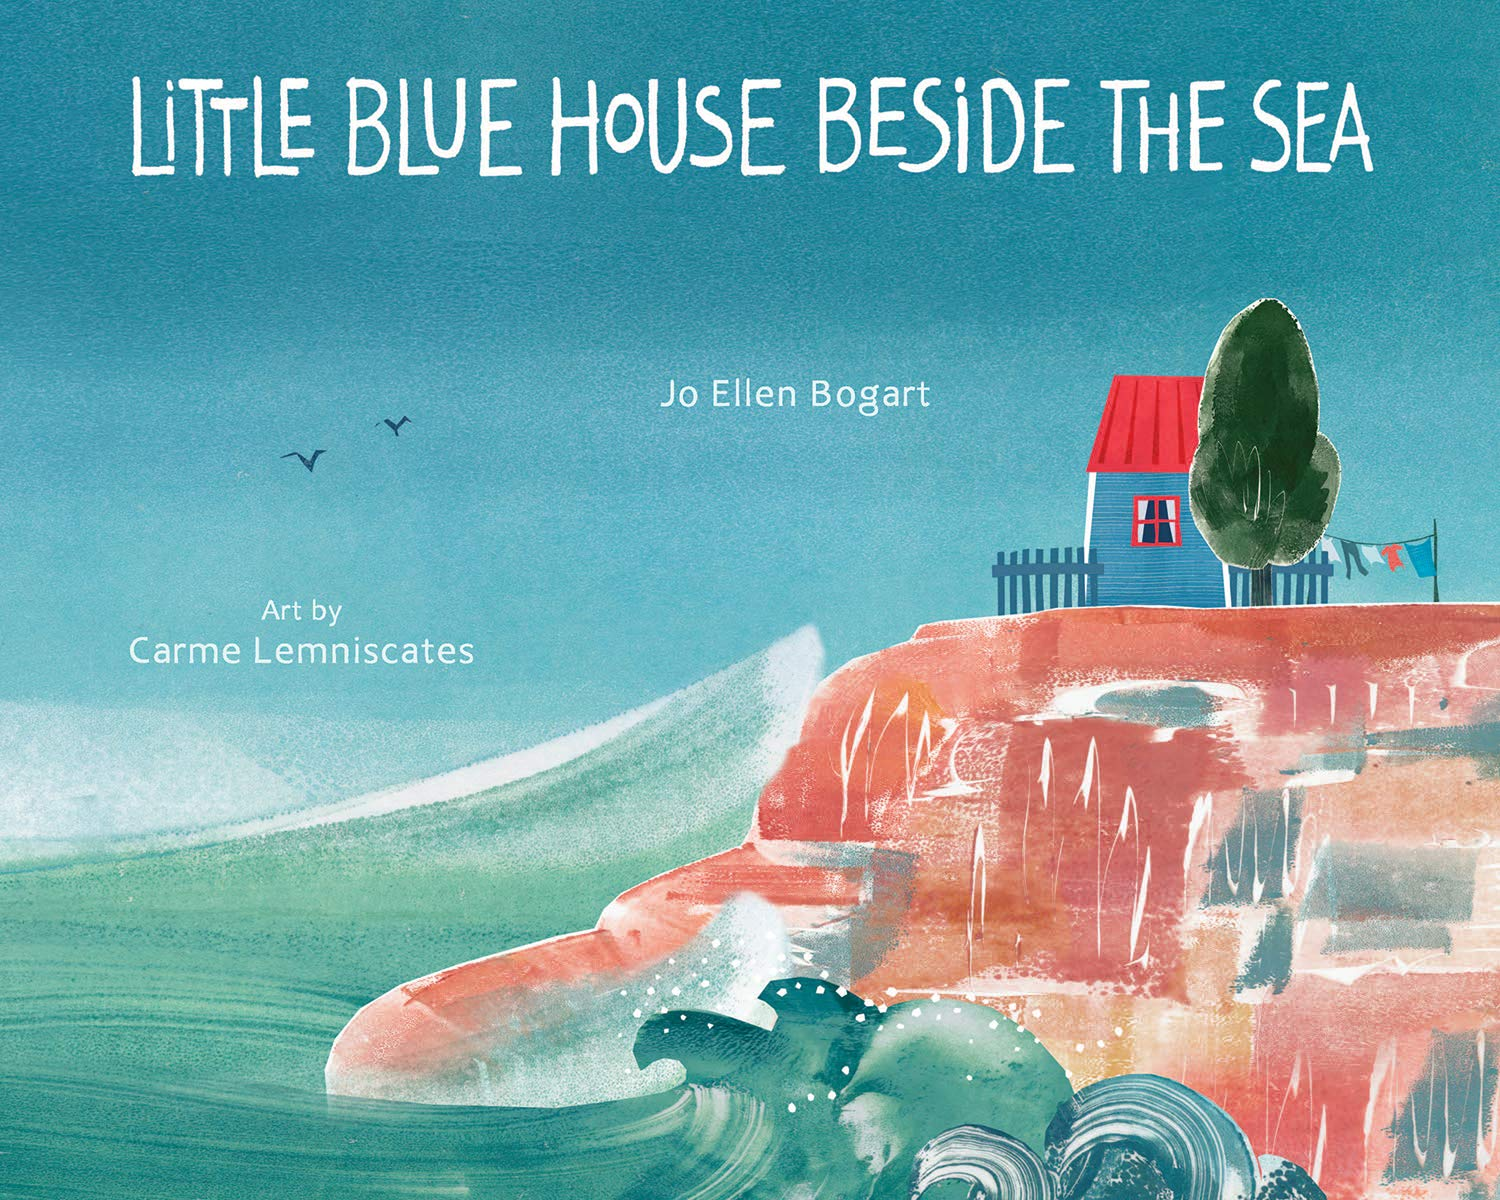 Little Blue House Beside the Sea